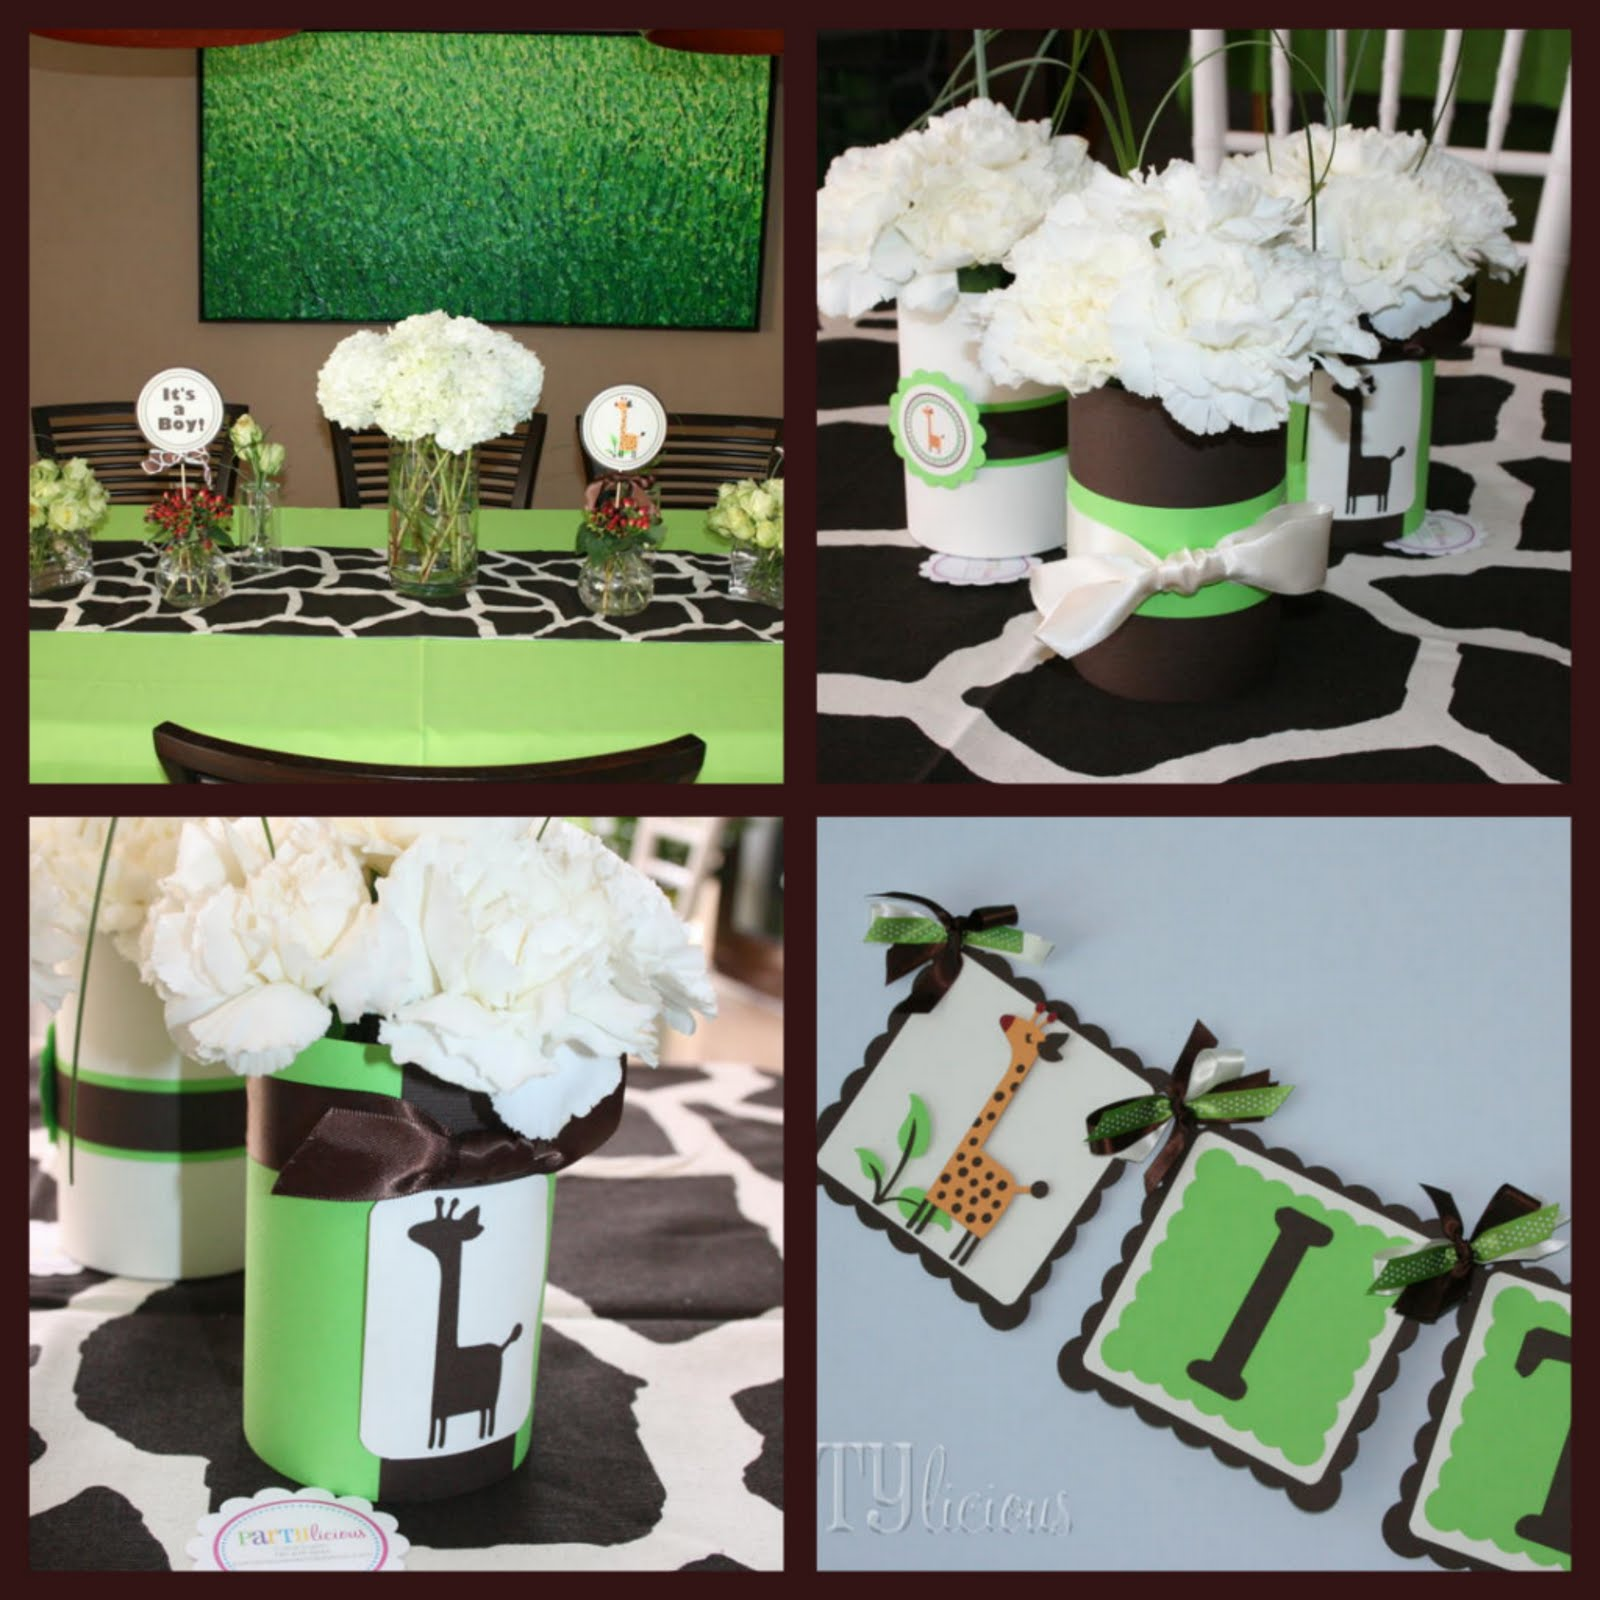 Baby Shower Food Ideas: Baby Shower Ideas Giraffe Theme